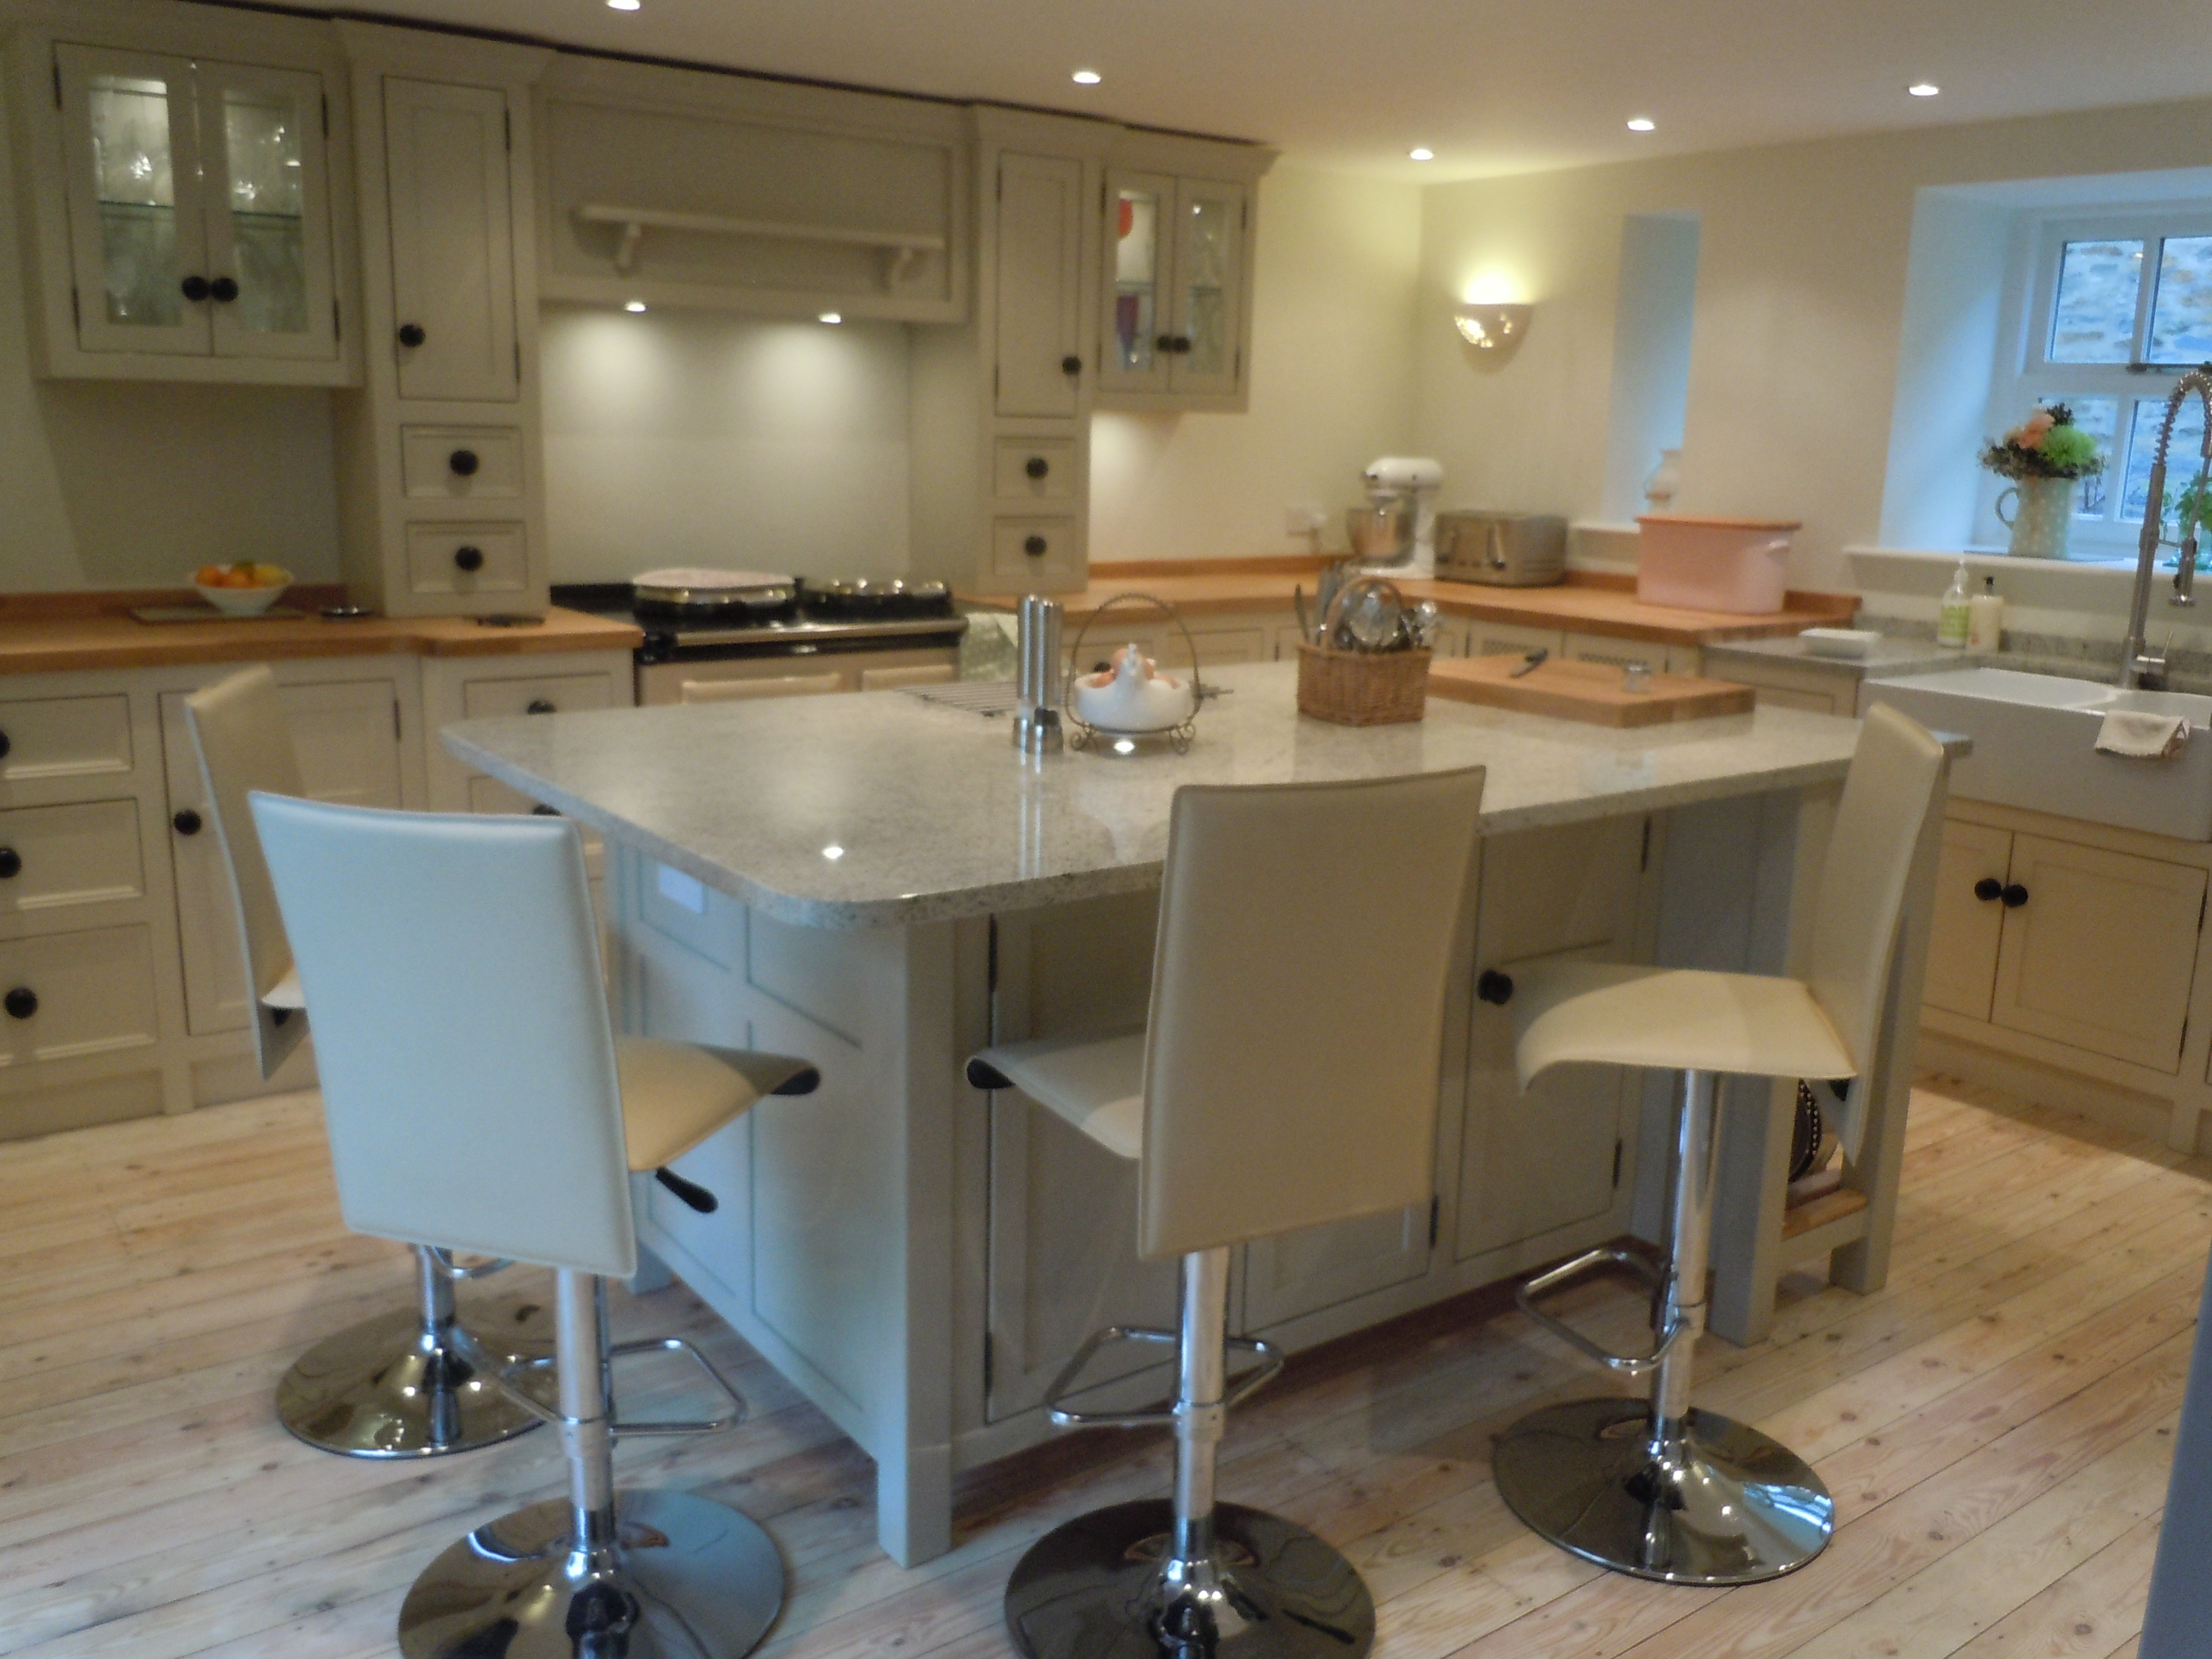 T14 Kitchen Island Unit Seating Space The Olive Branch Kitchens Ltd The Olive Branch